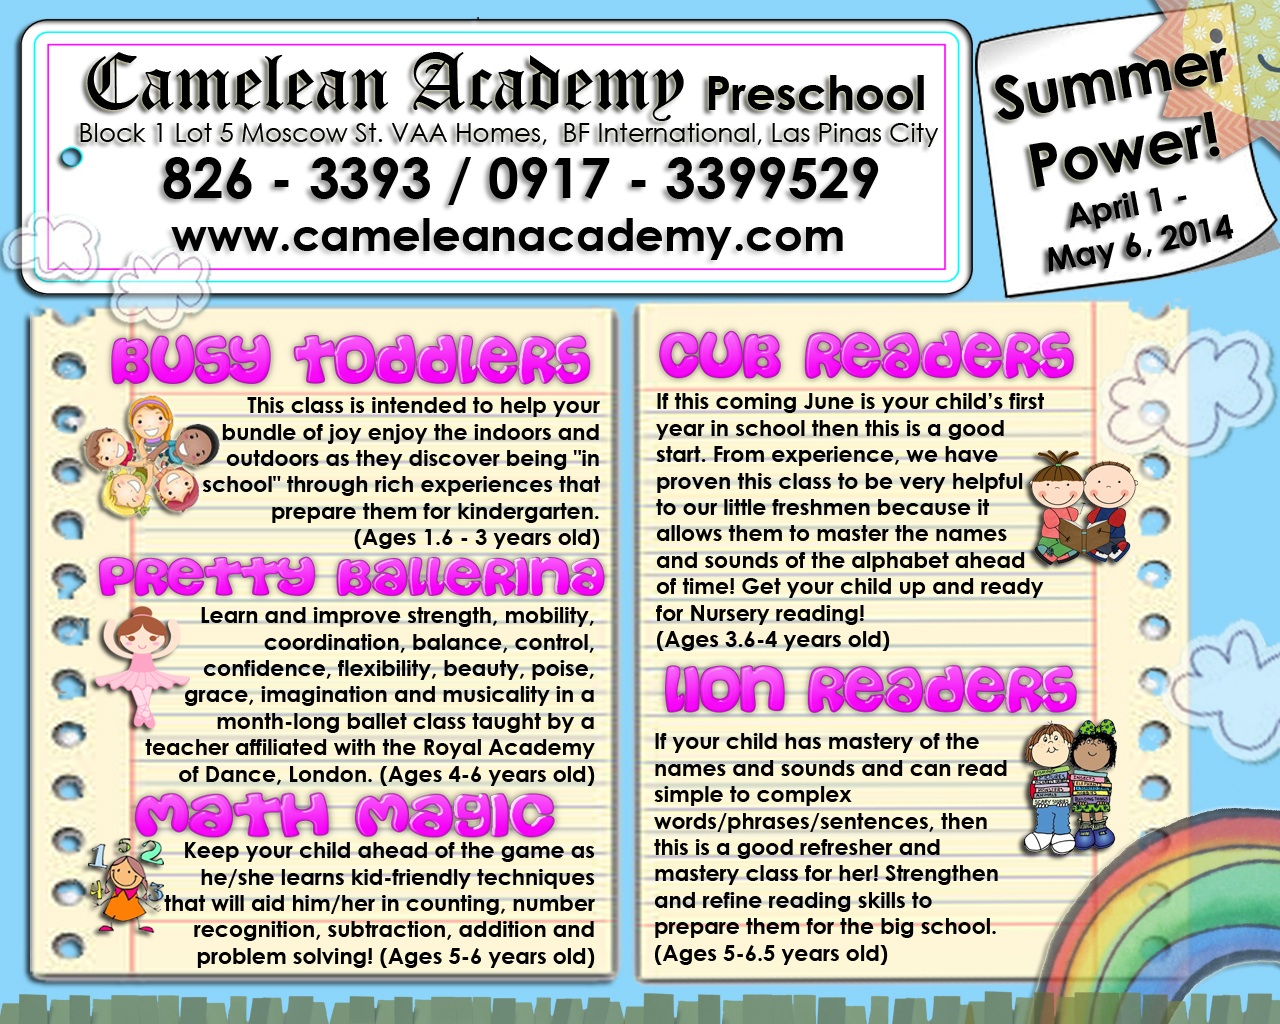 Summer Classes for 2014 | Camelean Academy